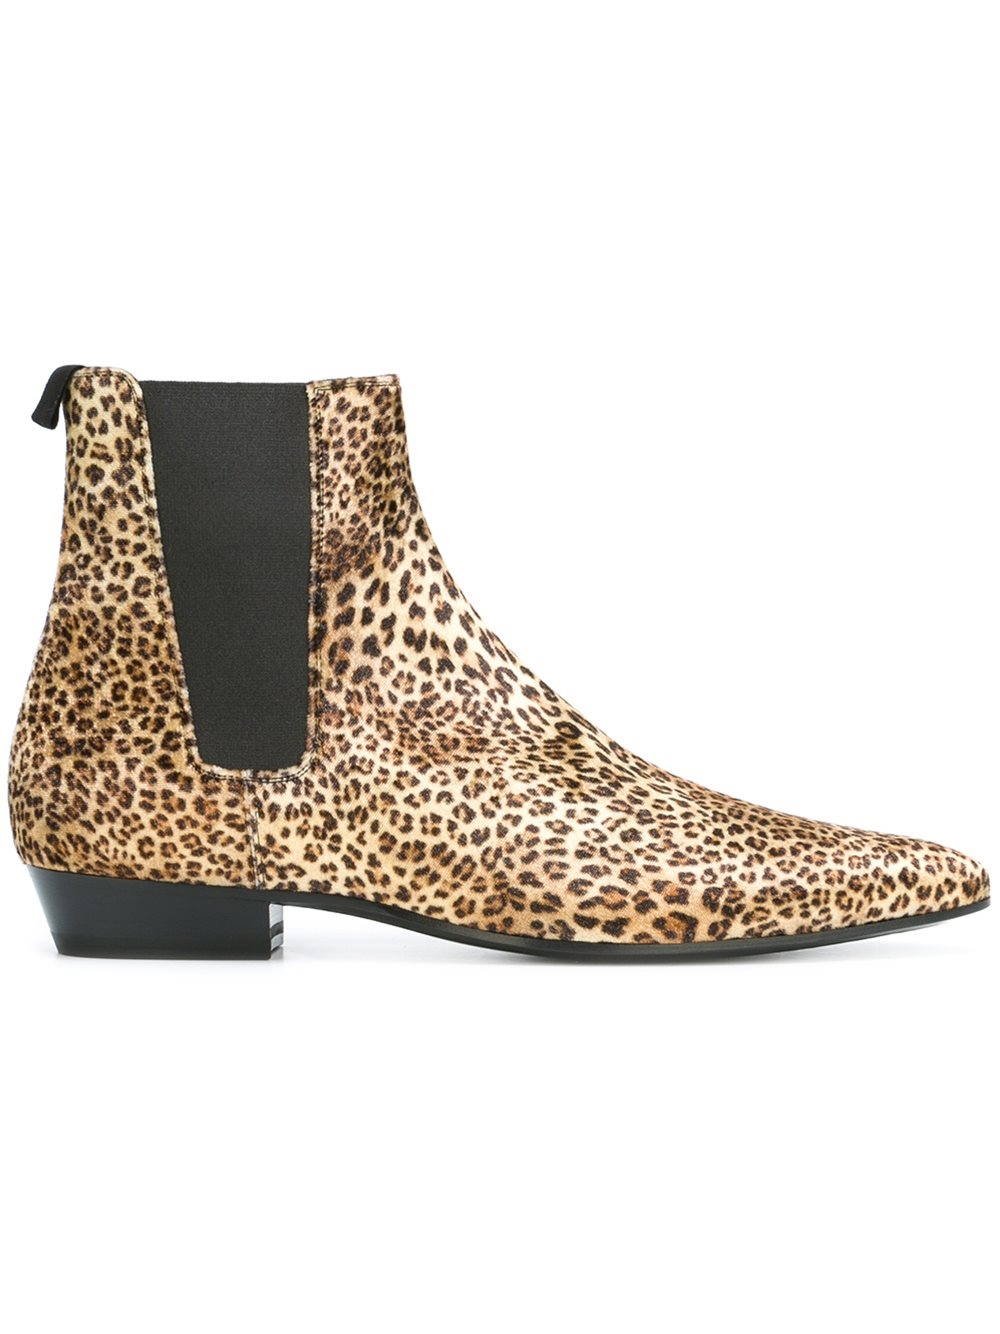 deb79ae005b4 WPG Vintage Style leopard Chelsea Boots Top quality Leather Suede Men Shoes  Luxury Brand Chelsea Men